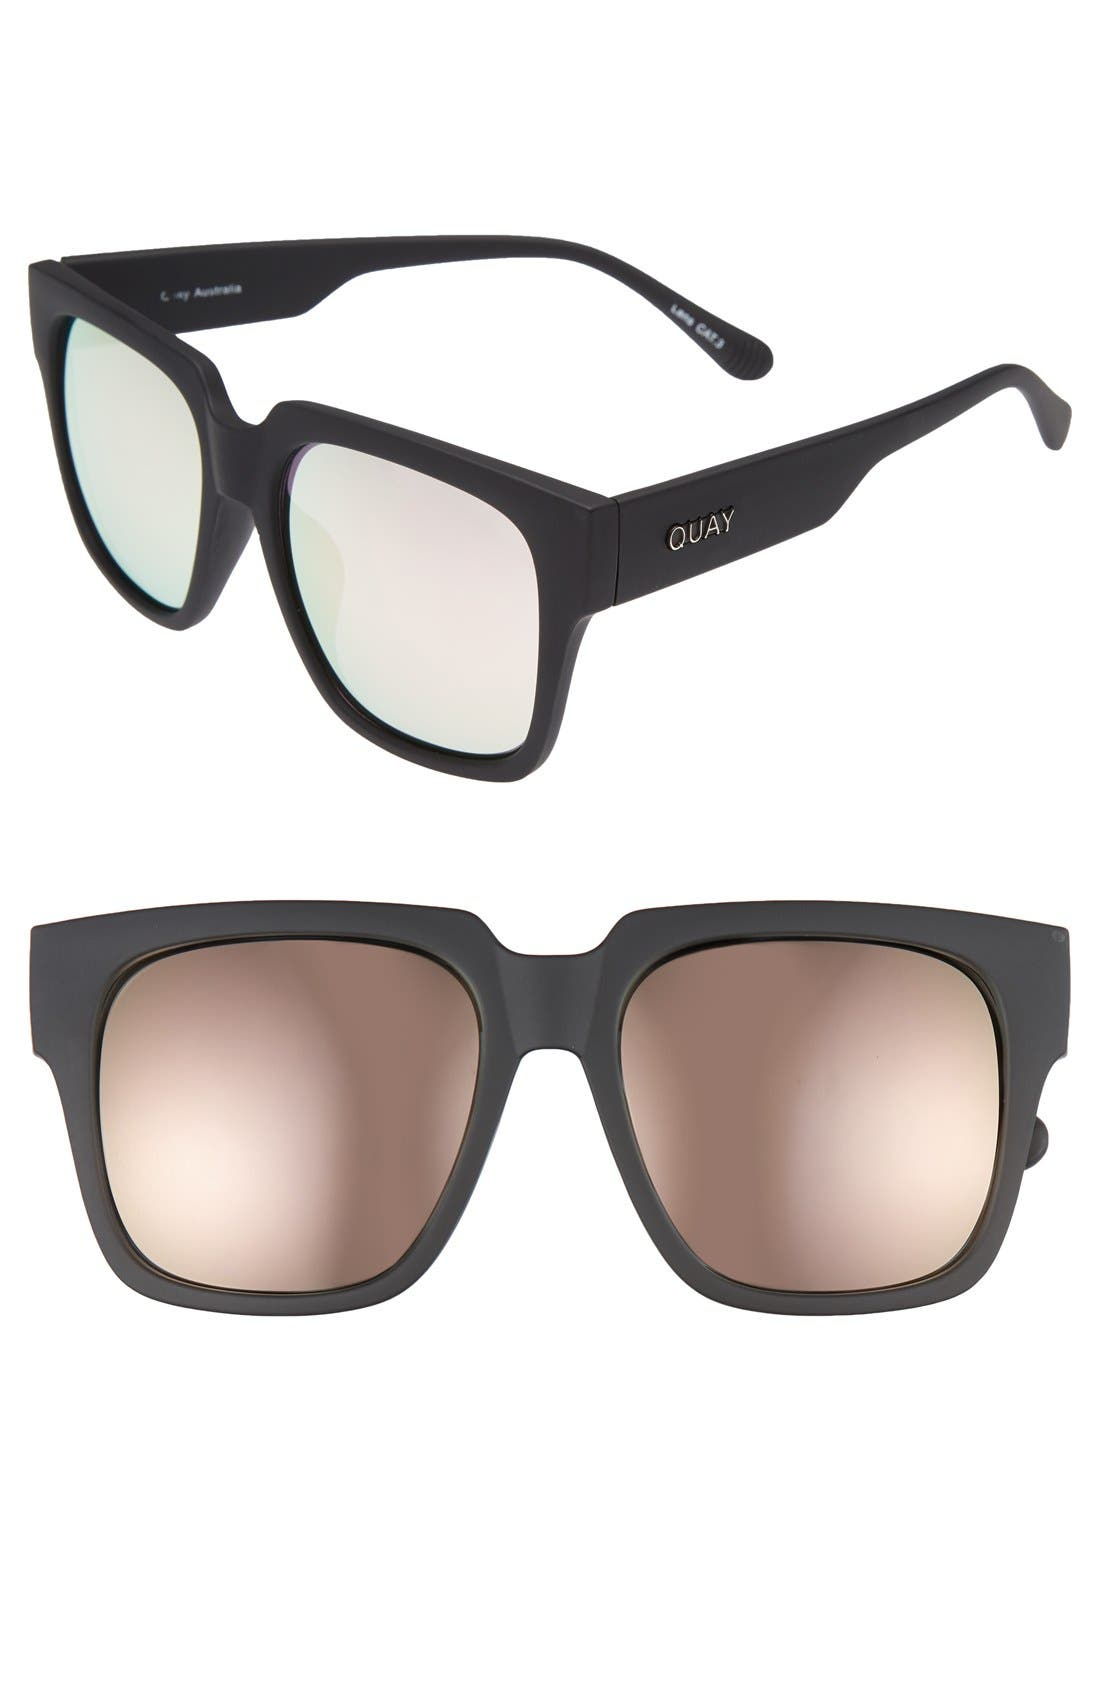 'On the Prowl' 55mm Square Sunglasses,                             Main thumbnail 1, color,                             Black/ Pink Mirror